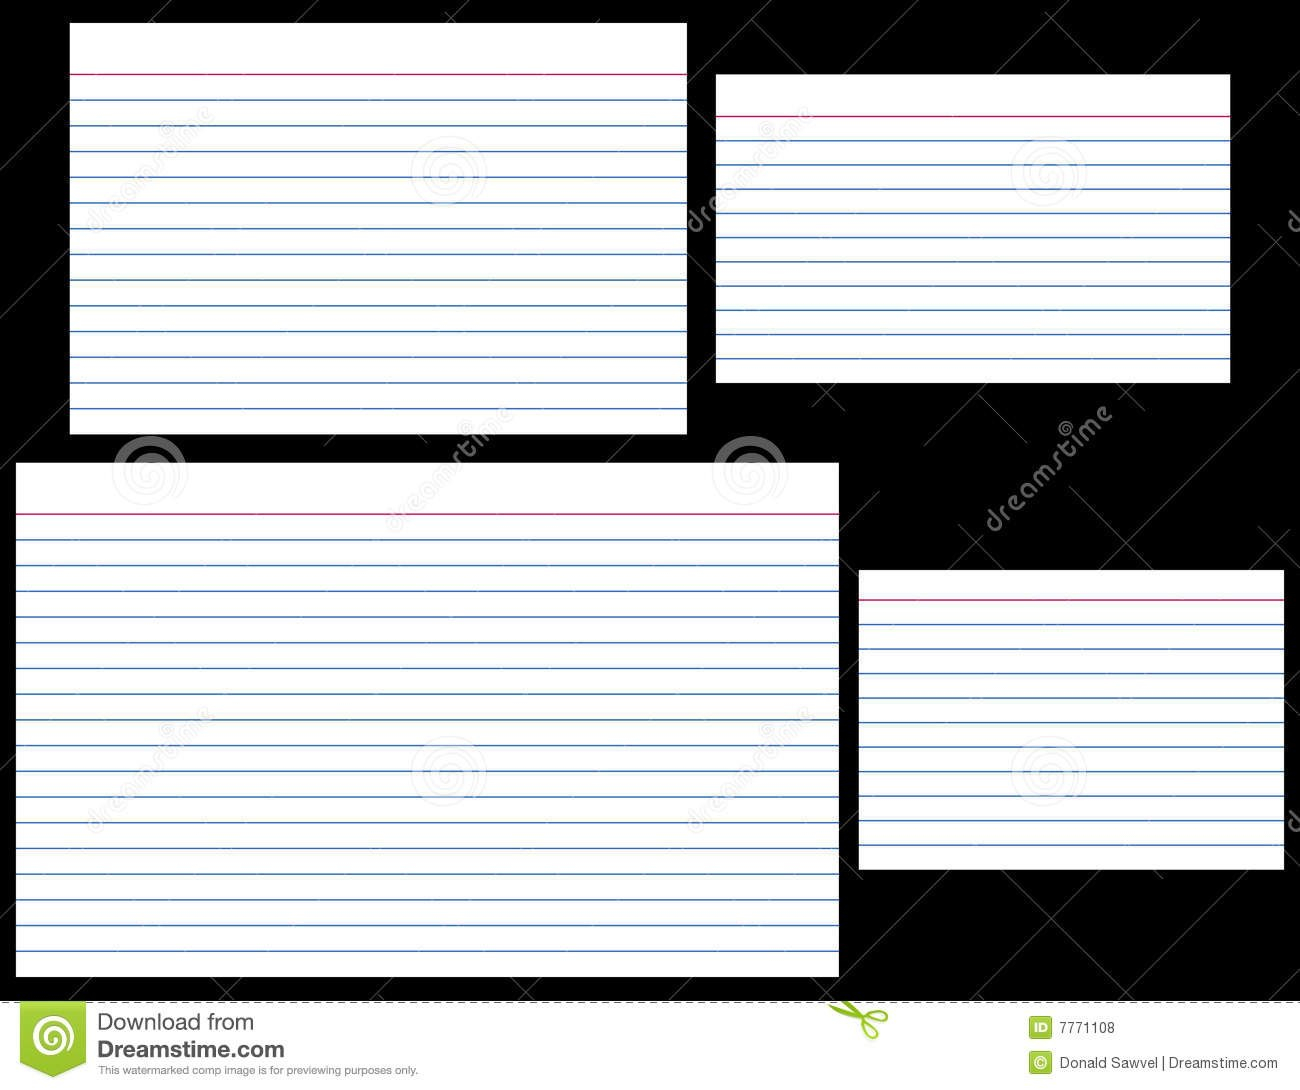 Index Cards Stock Vector Illustration Of Stationery Lined With Regard To 3X5 Note Card Template